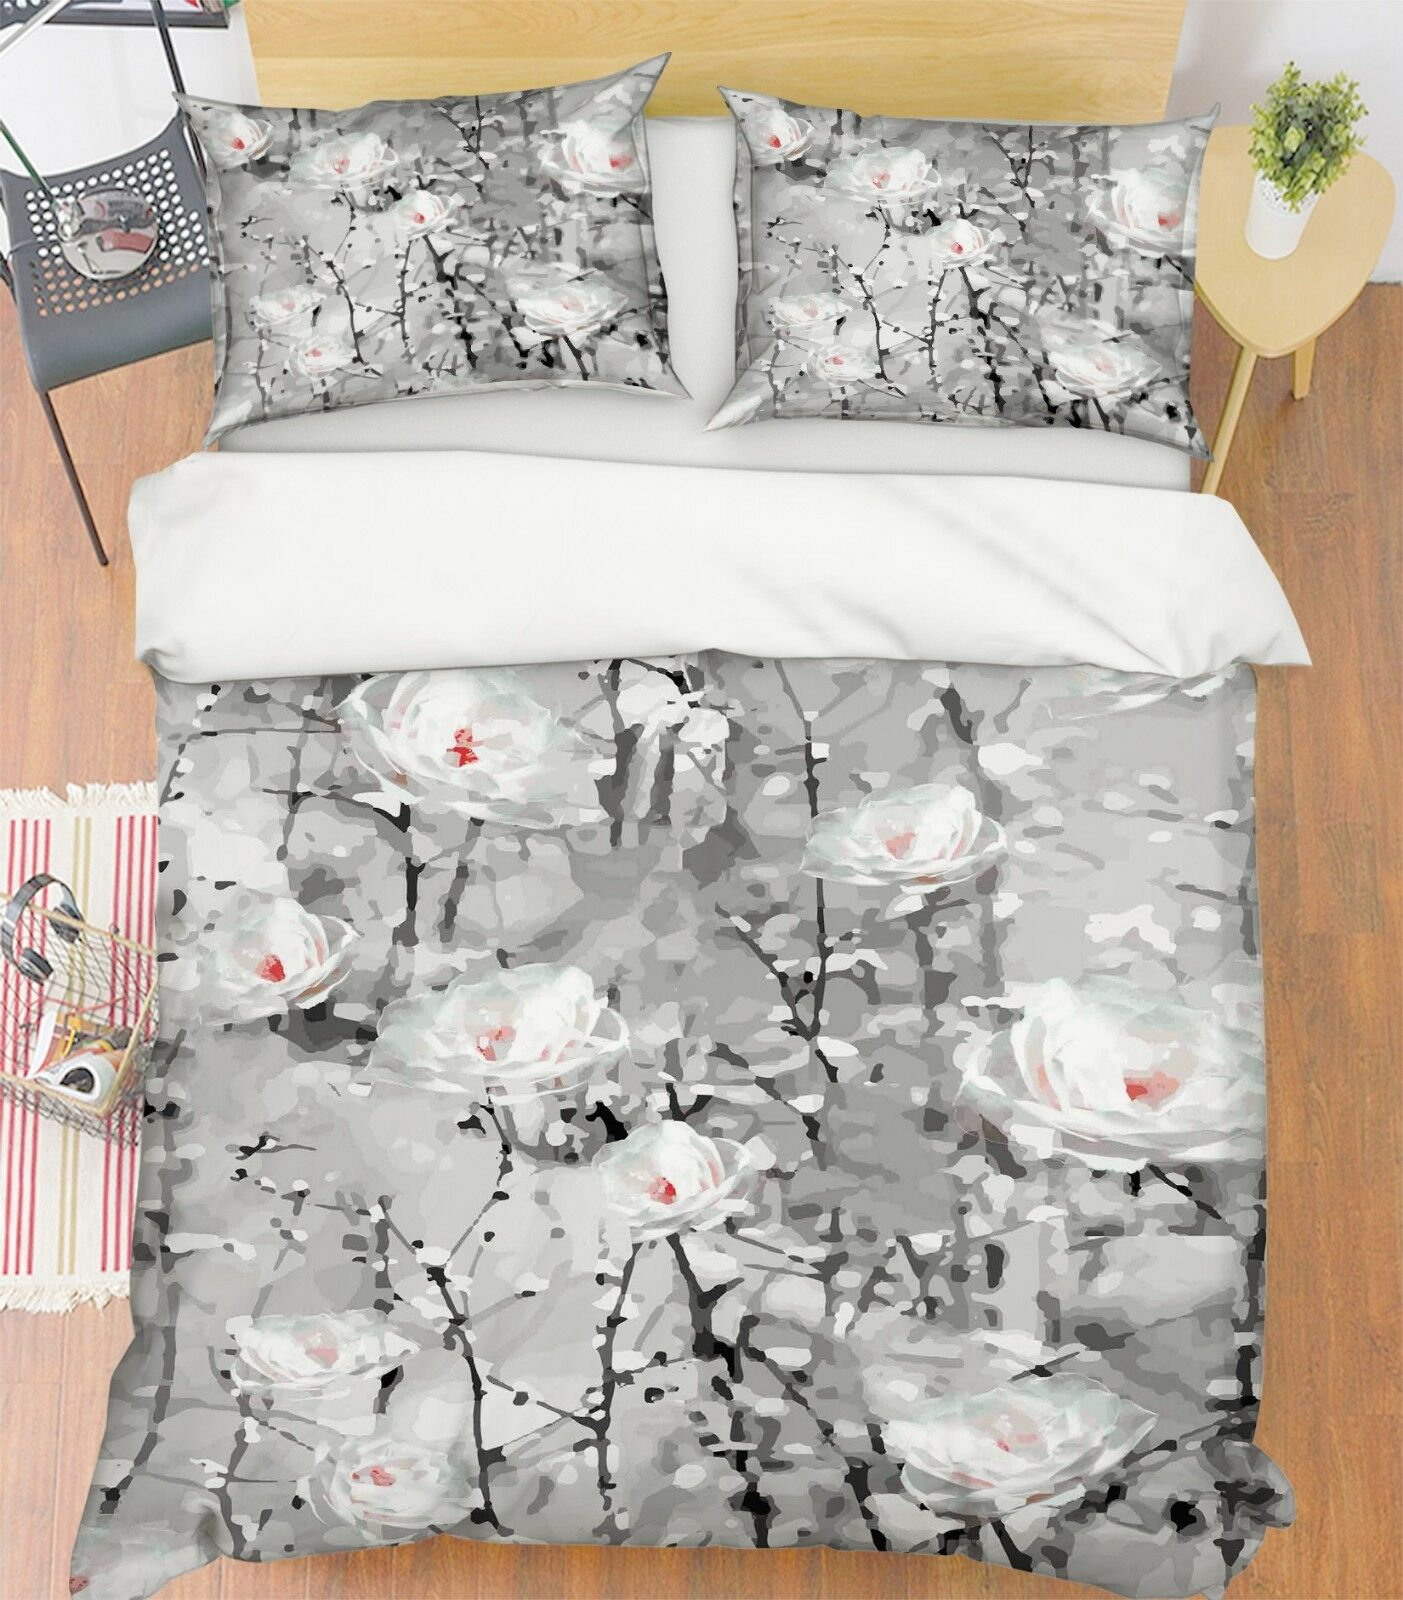 3D Blaumenmalerei 35 Bett Kissenbezüge steppen Duvet Decken Set Single Königin DE